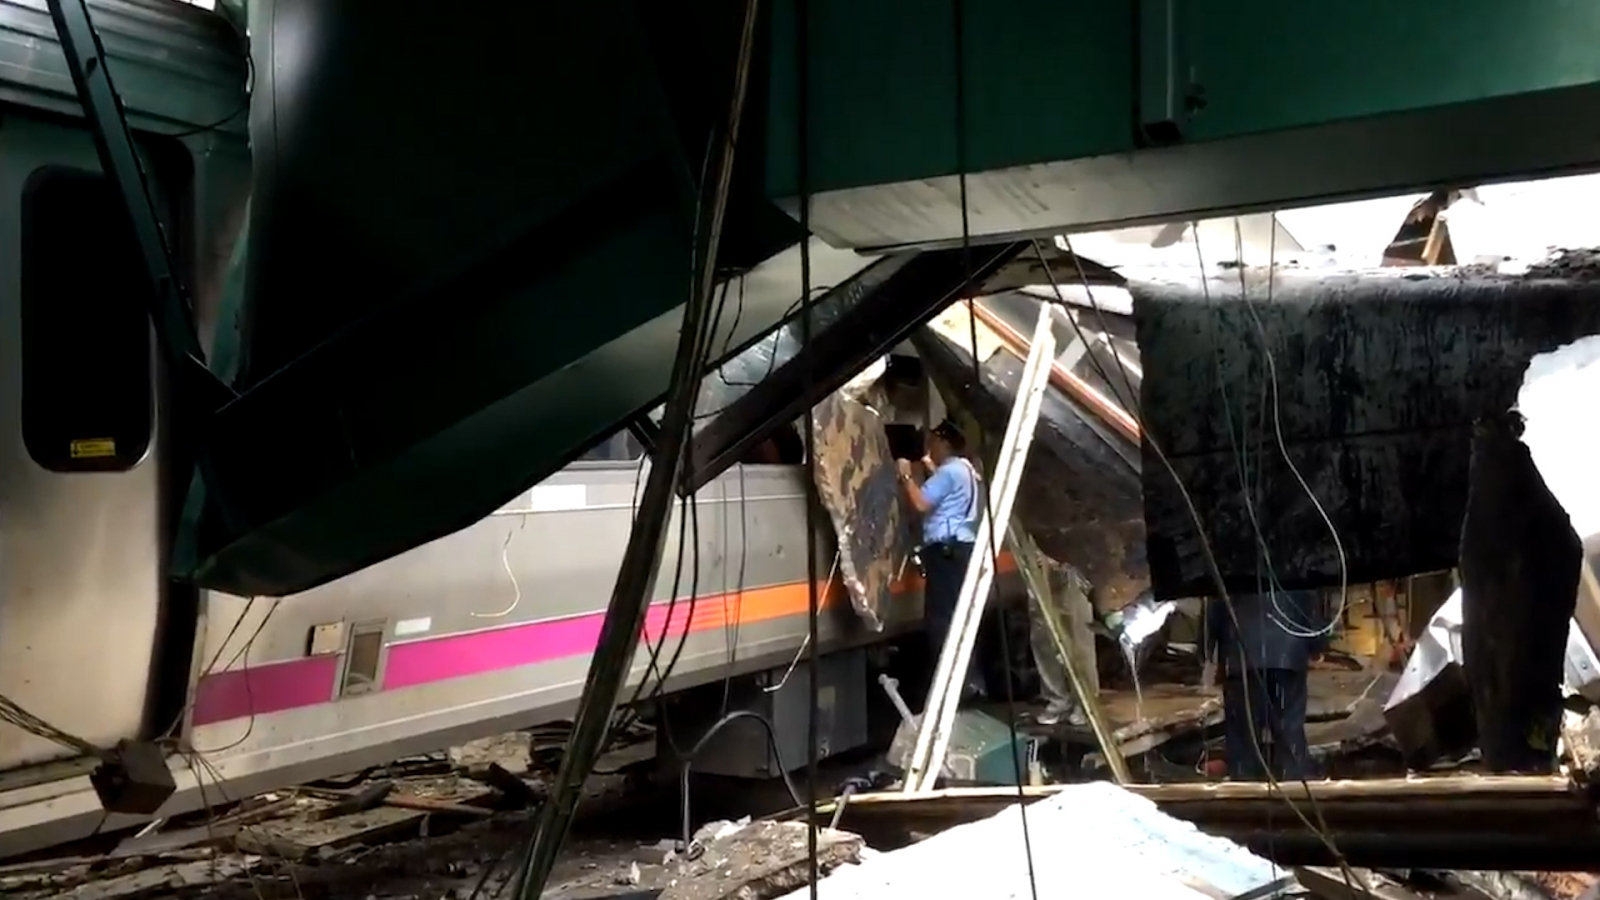 Hoboken crash: Dramatic footage shows station after deadly train crash